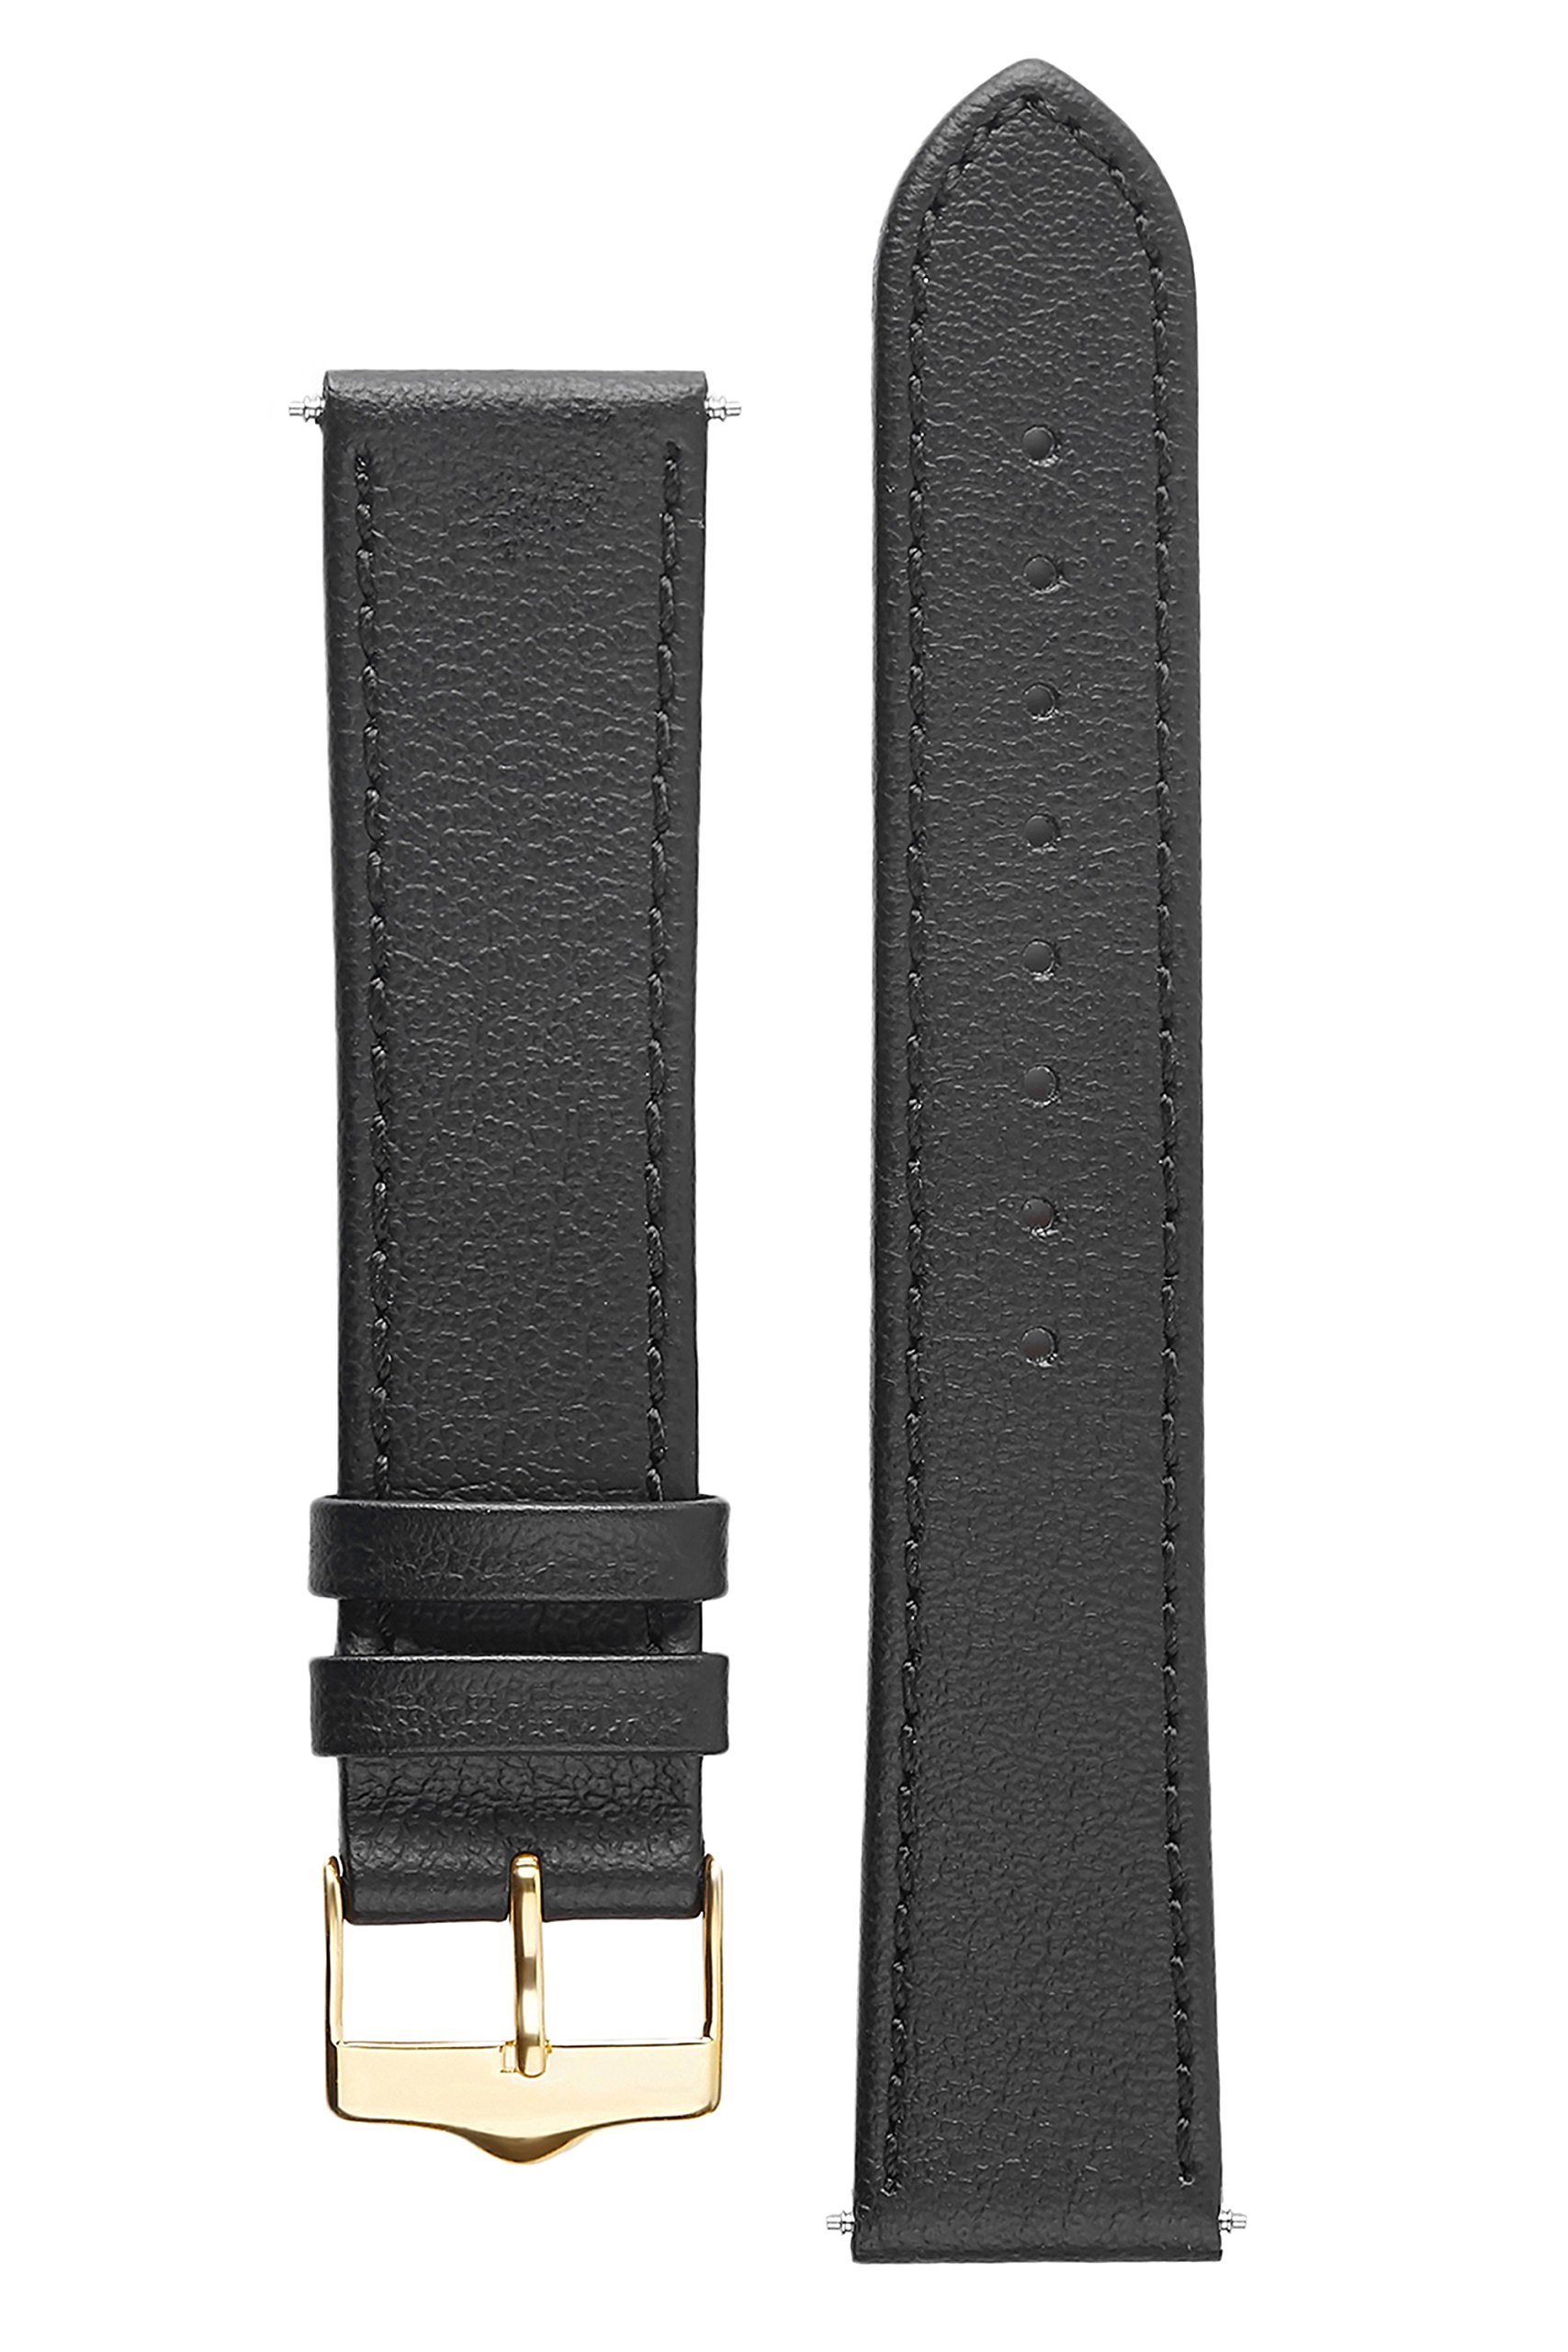 Signature Seasons in black 18 mm watch band. Replacement watch strap. Genuine leather. Gold Buckle